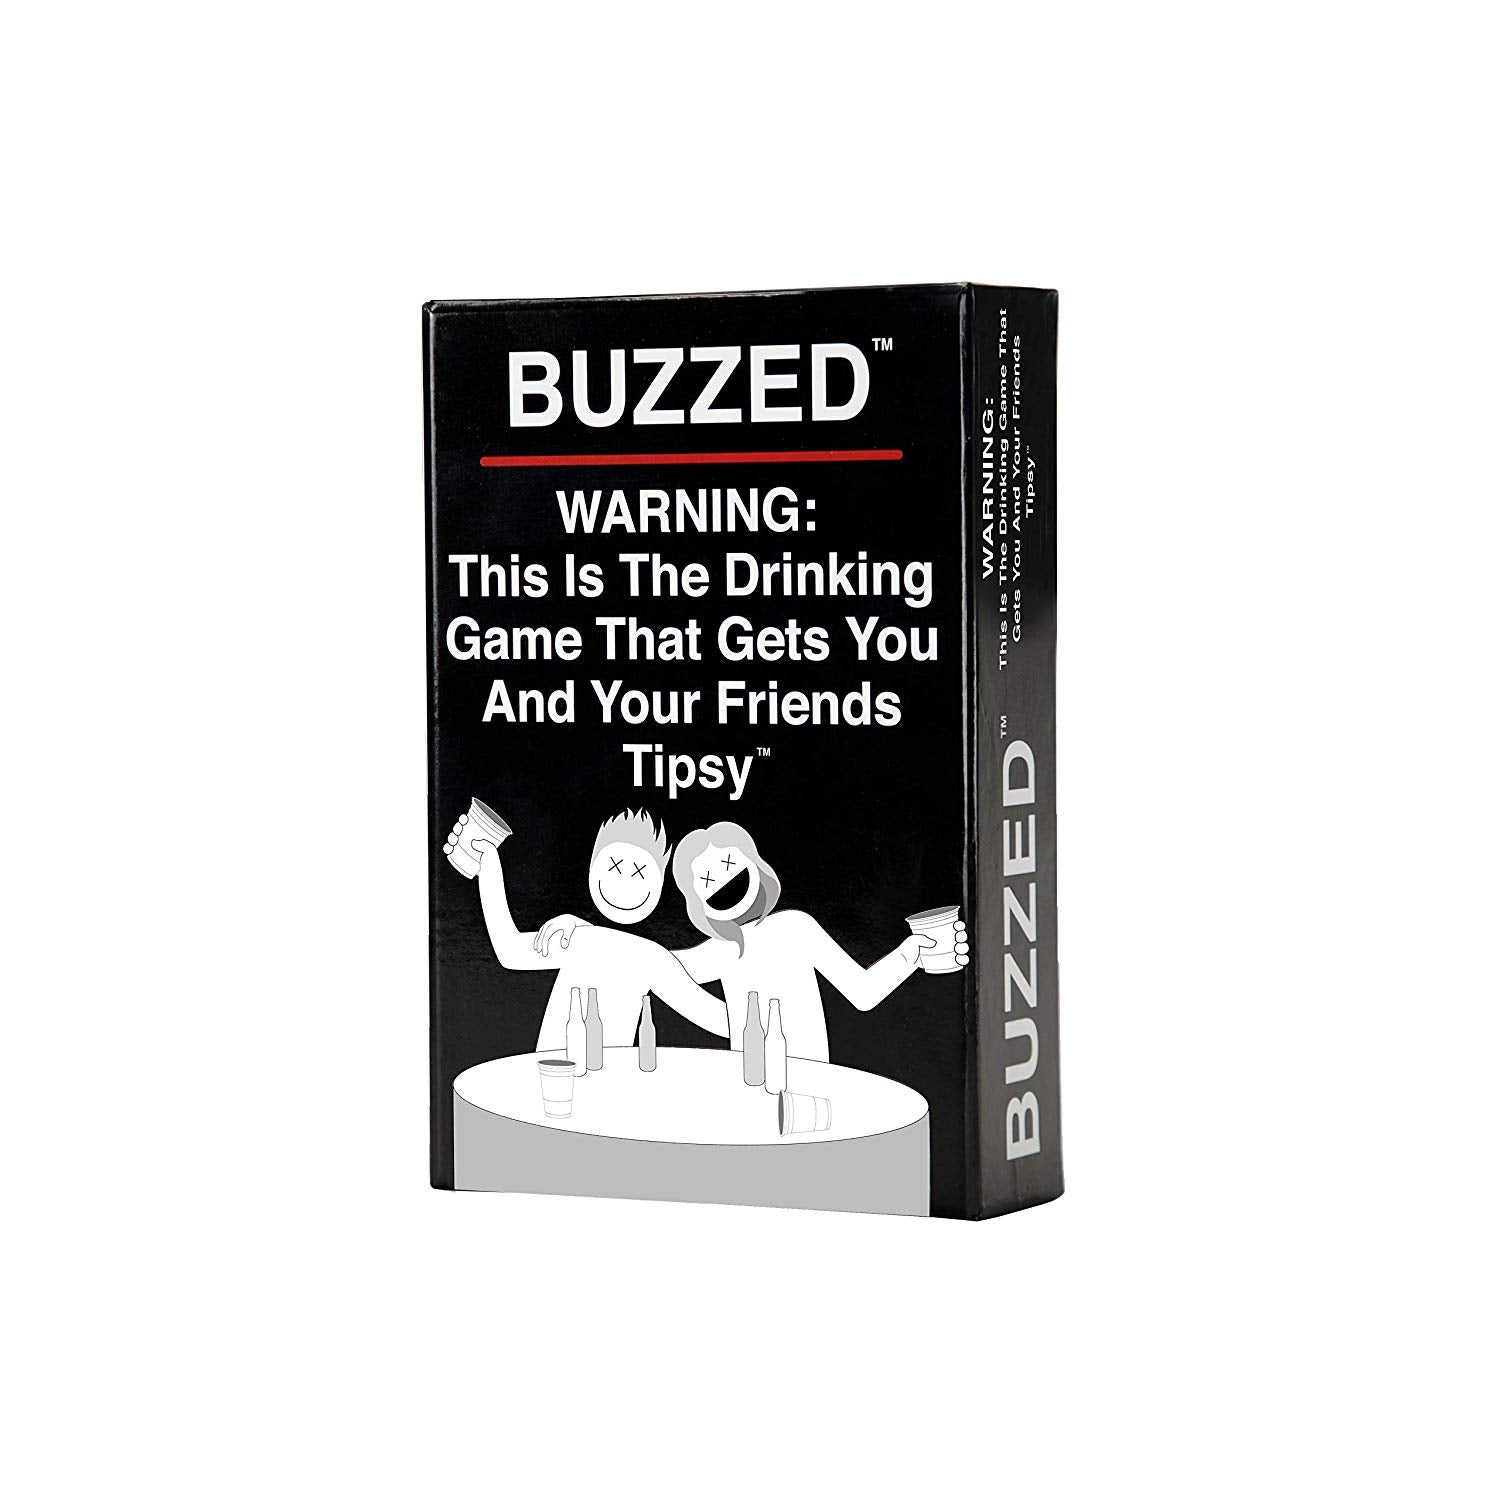 PRE-ORDER - Buzzed - This is The Drinking Game That Gets You and Your Friends Tipsy!